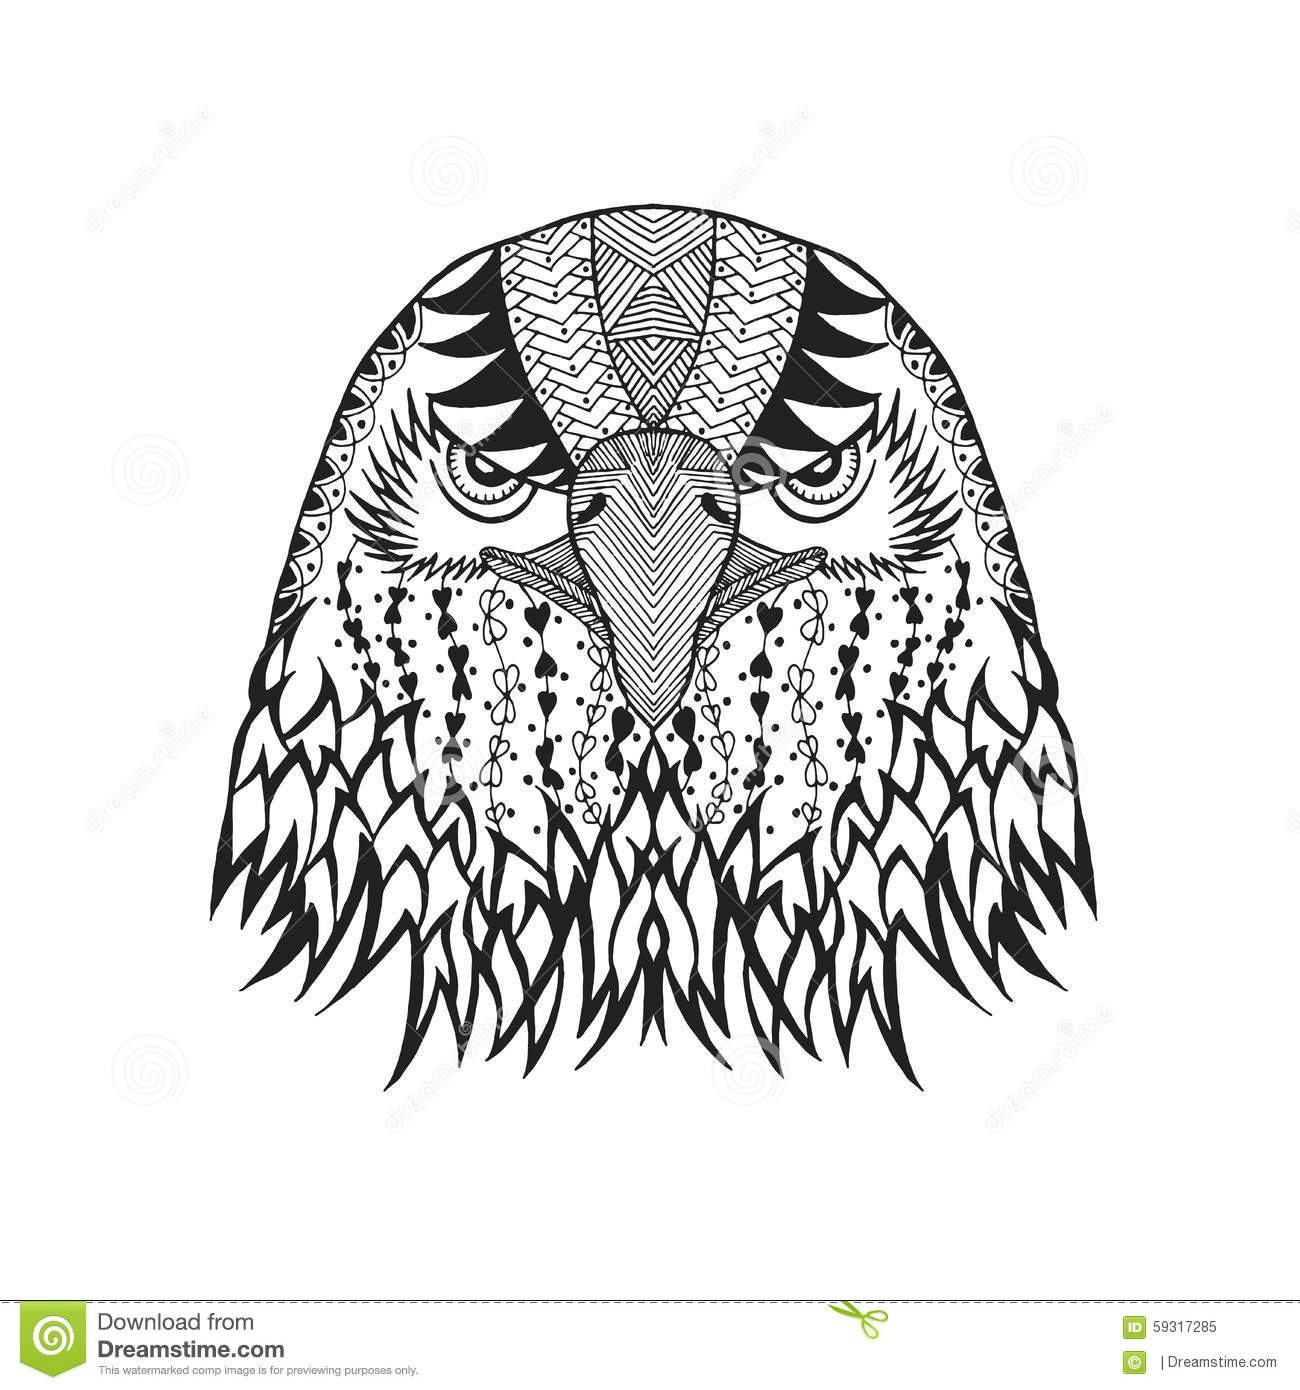 Zentangle Stylized Eagle Head Sketch For Tattoo Or T shirt Stock Vector Image 59317285